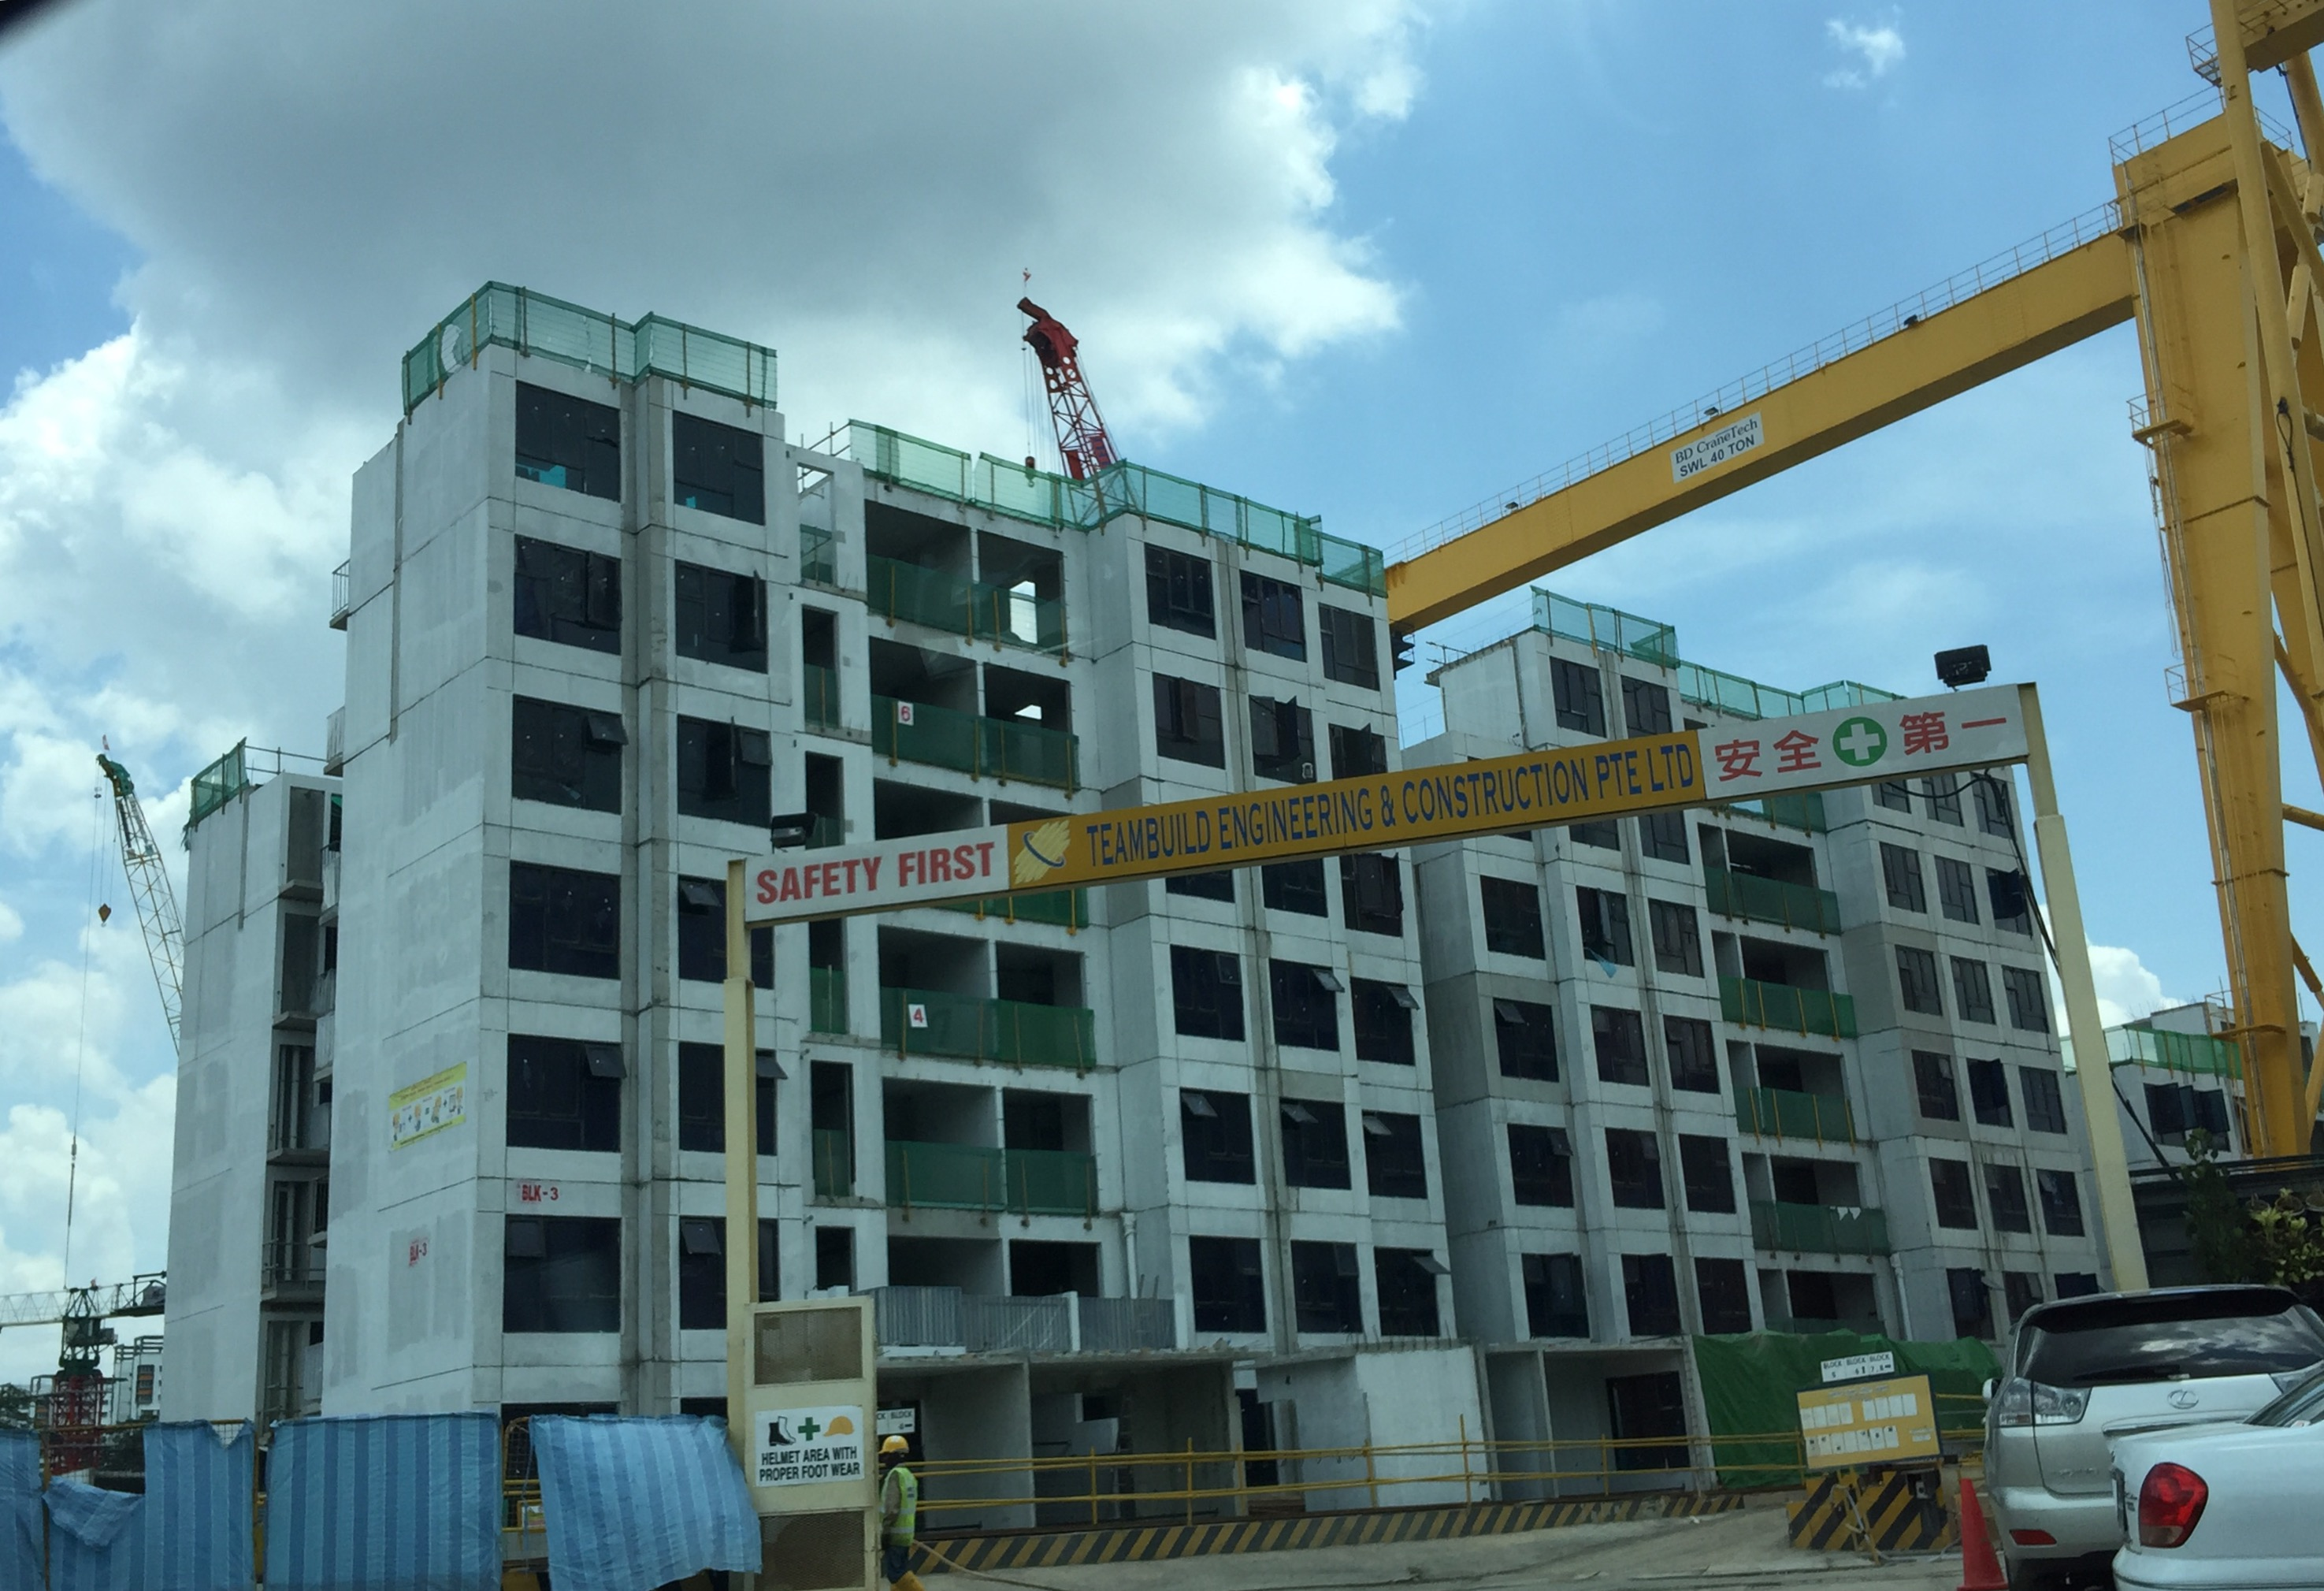 Brownstone EC price discount; Brownstone EC near MRT station; Brownstone EC by CDL